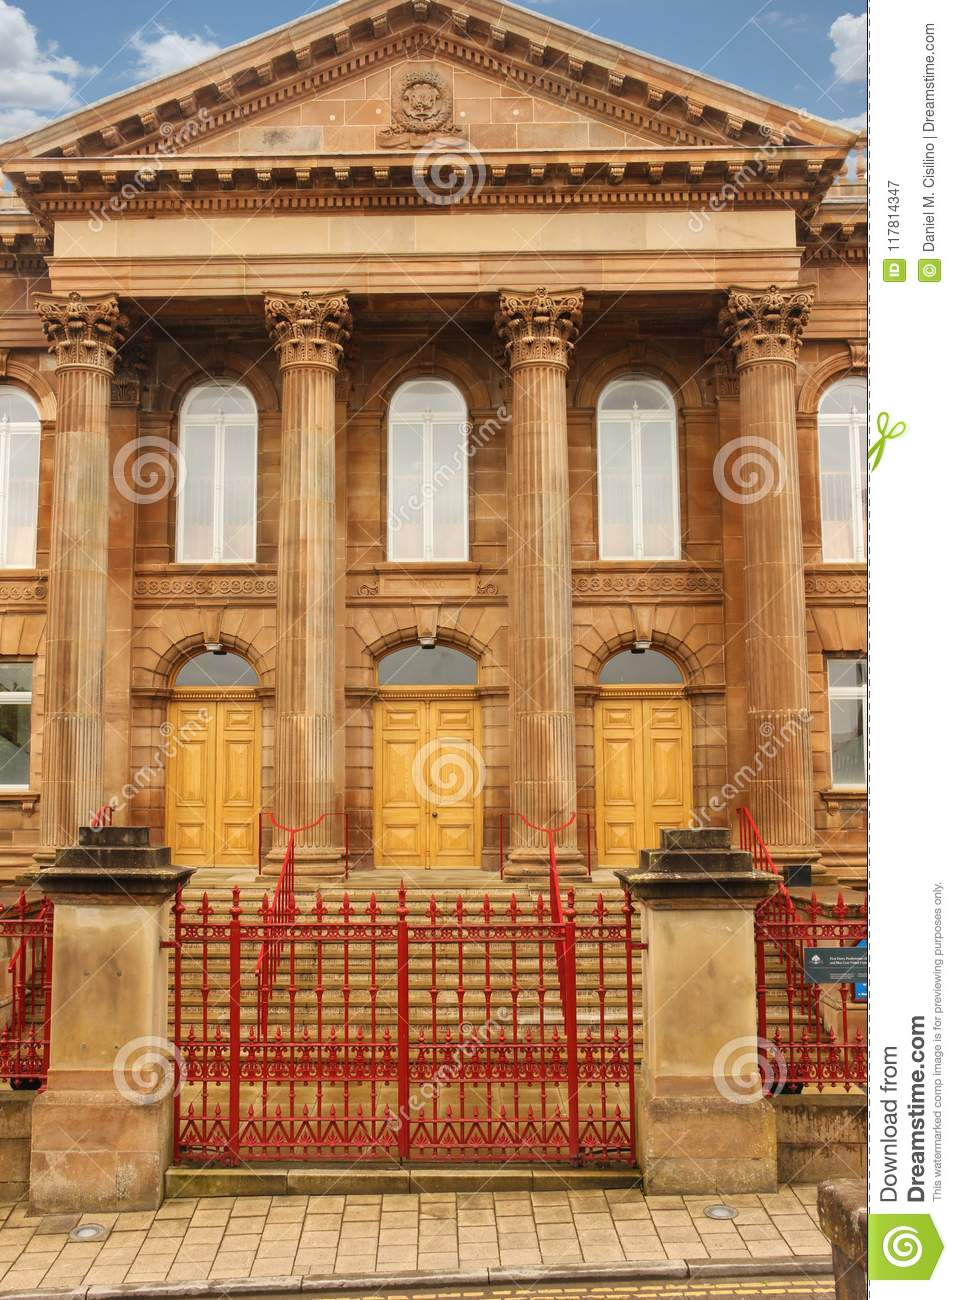 Entrance, Courthouse. Derry Londonderry. Northern Ireland